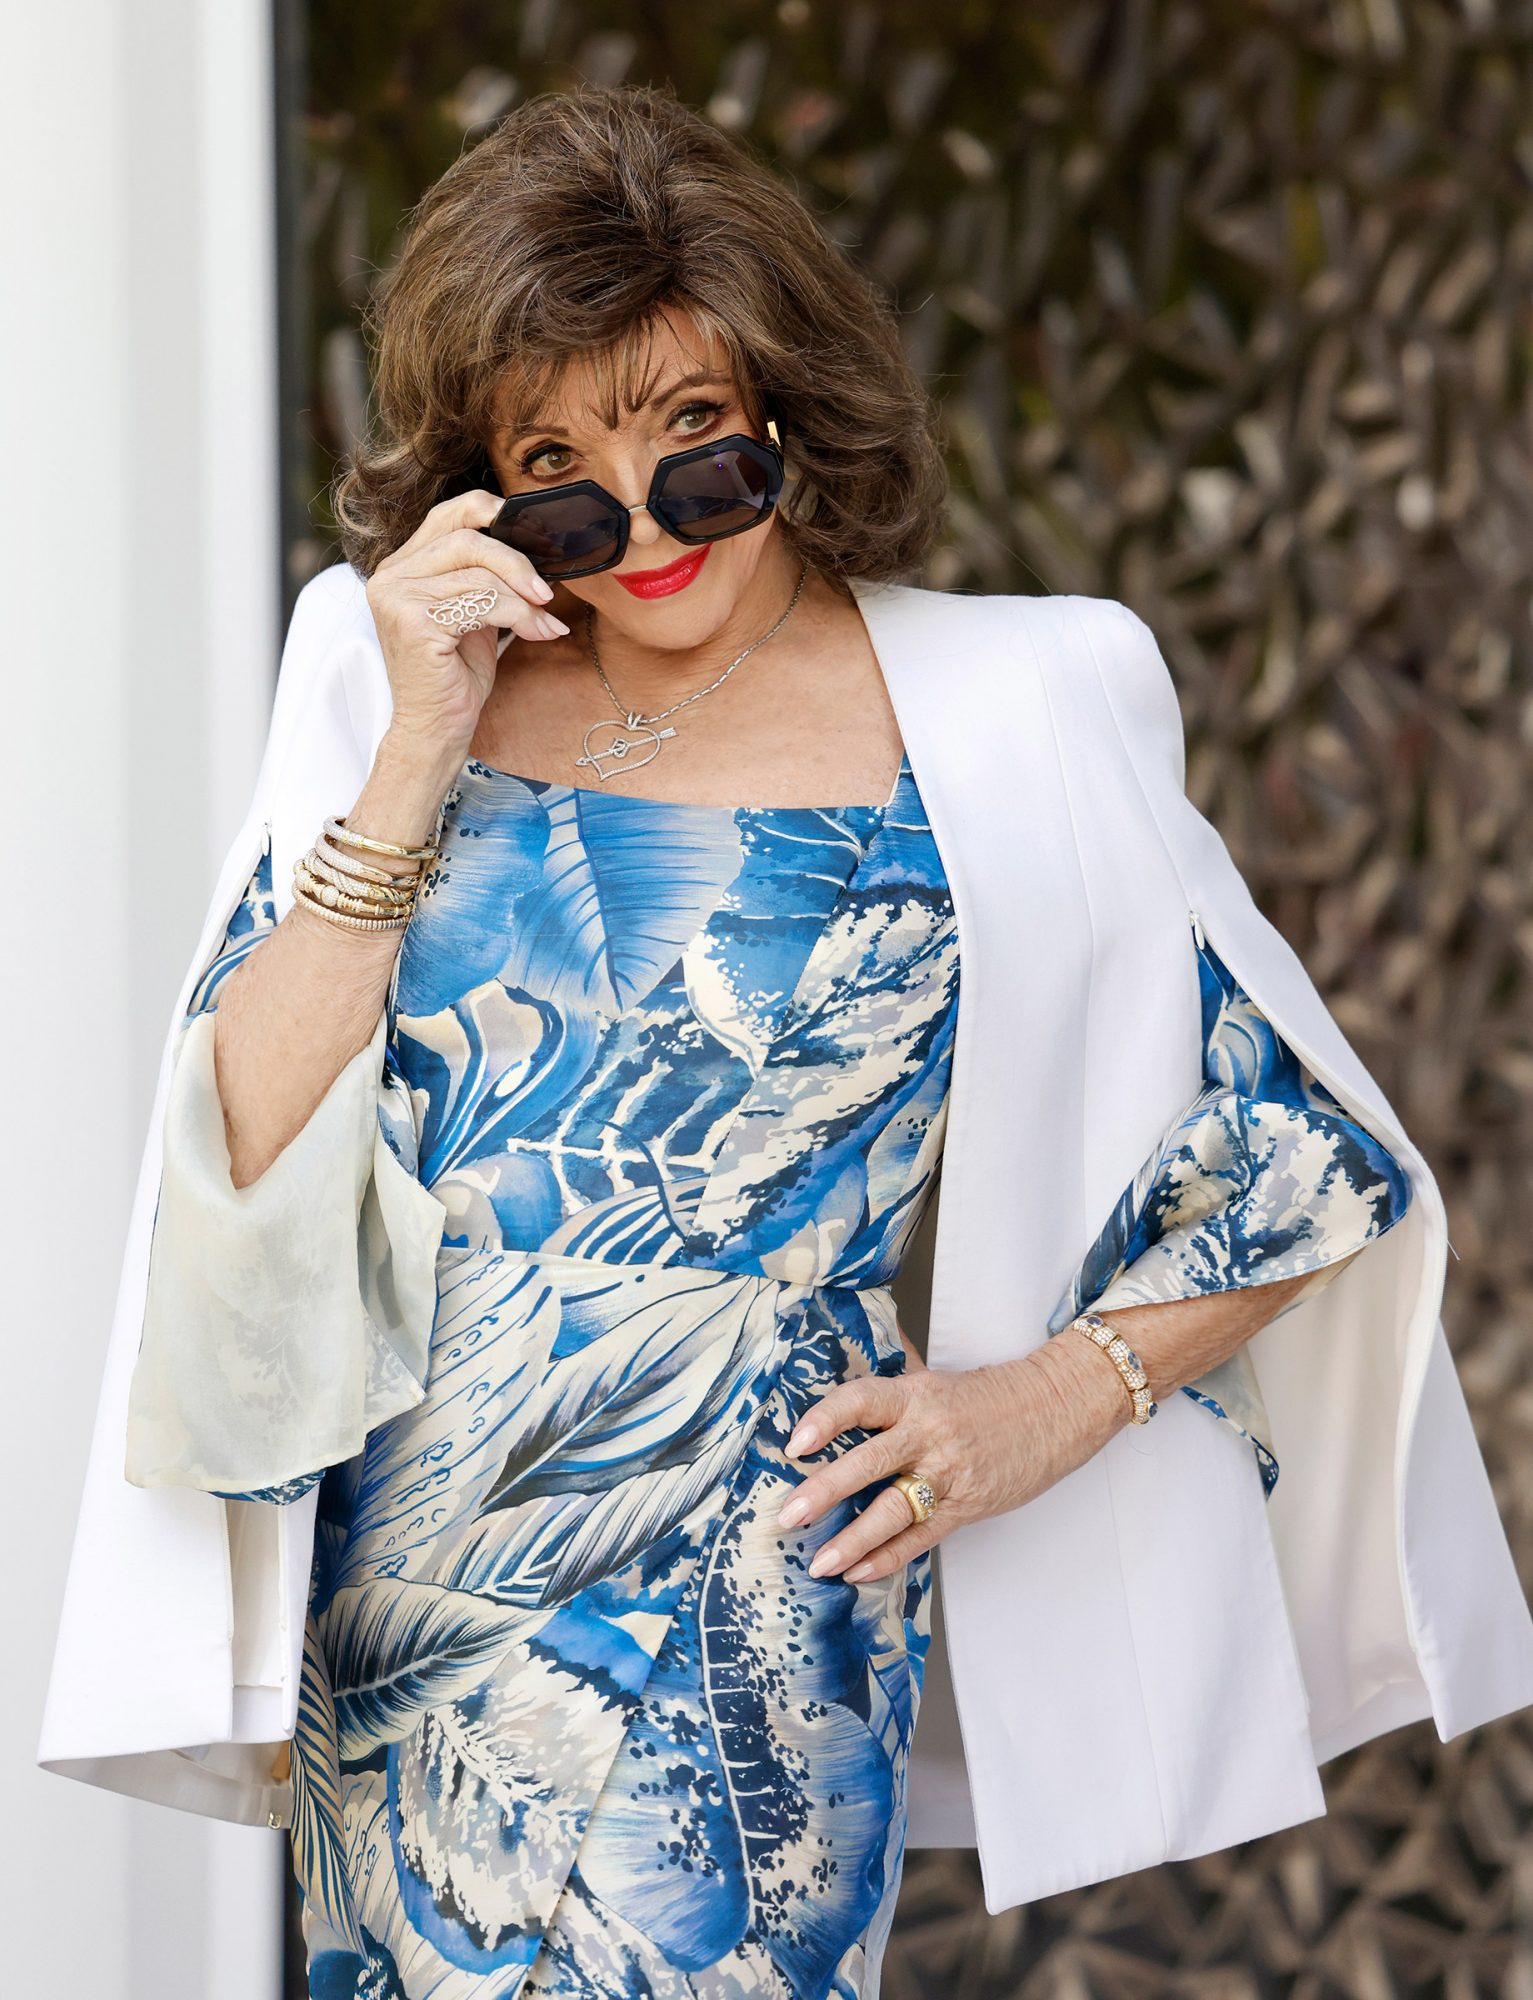 British actress Joan Collins during the Villa Remus Press Day on May 26, 2021 in Palma de Mallorca, Spain